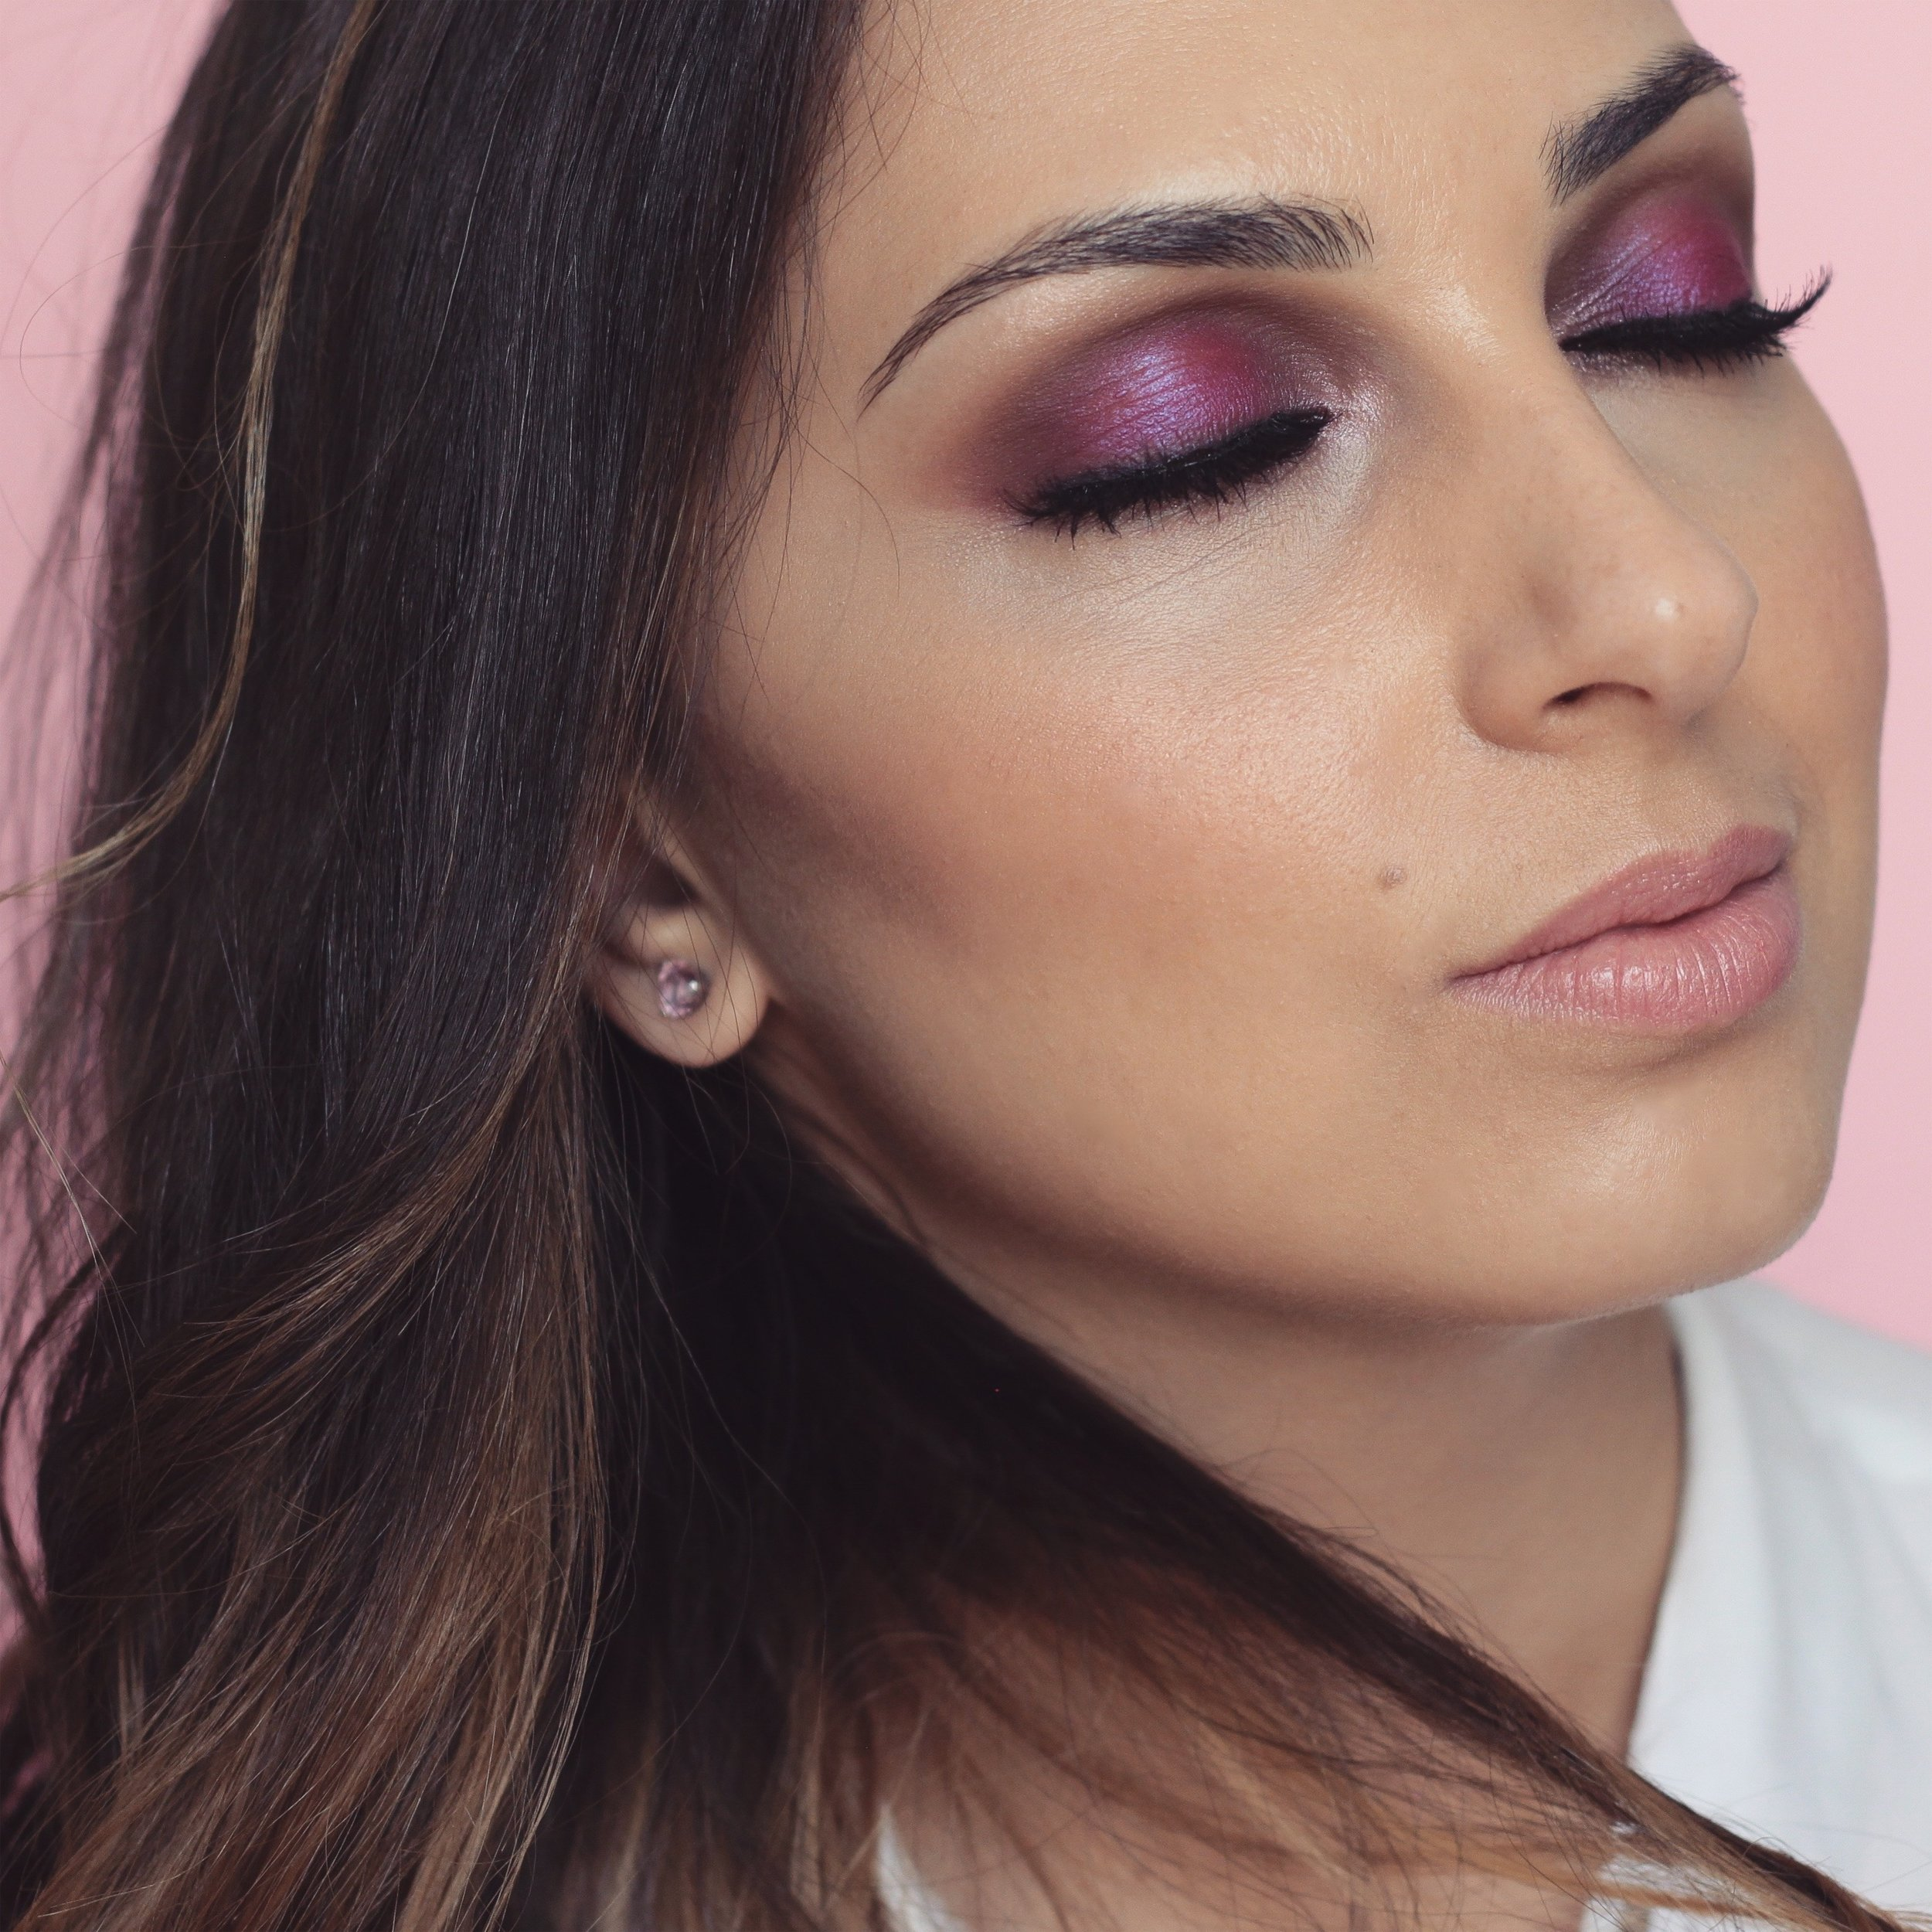 Post nadia zayat oct 30 pink makeup for breast cancer awareness month video baditri Choice Image